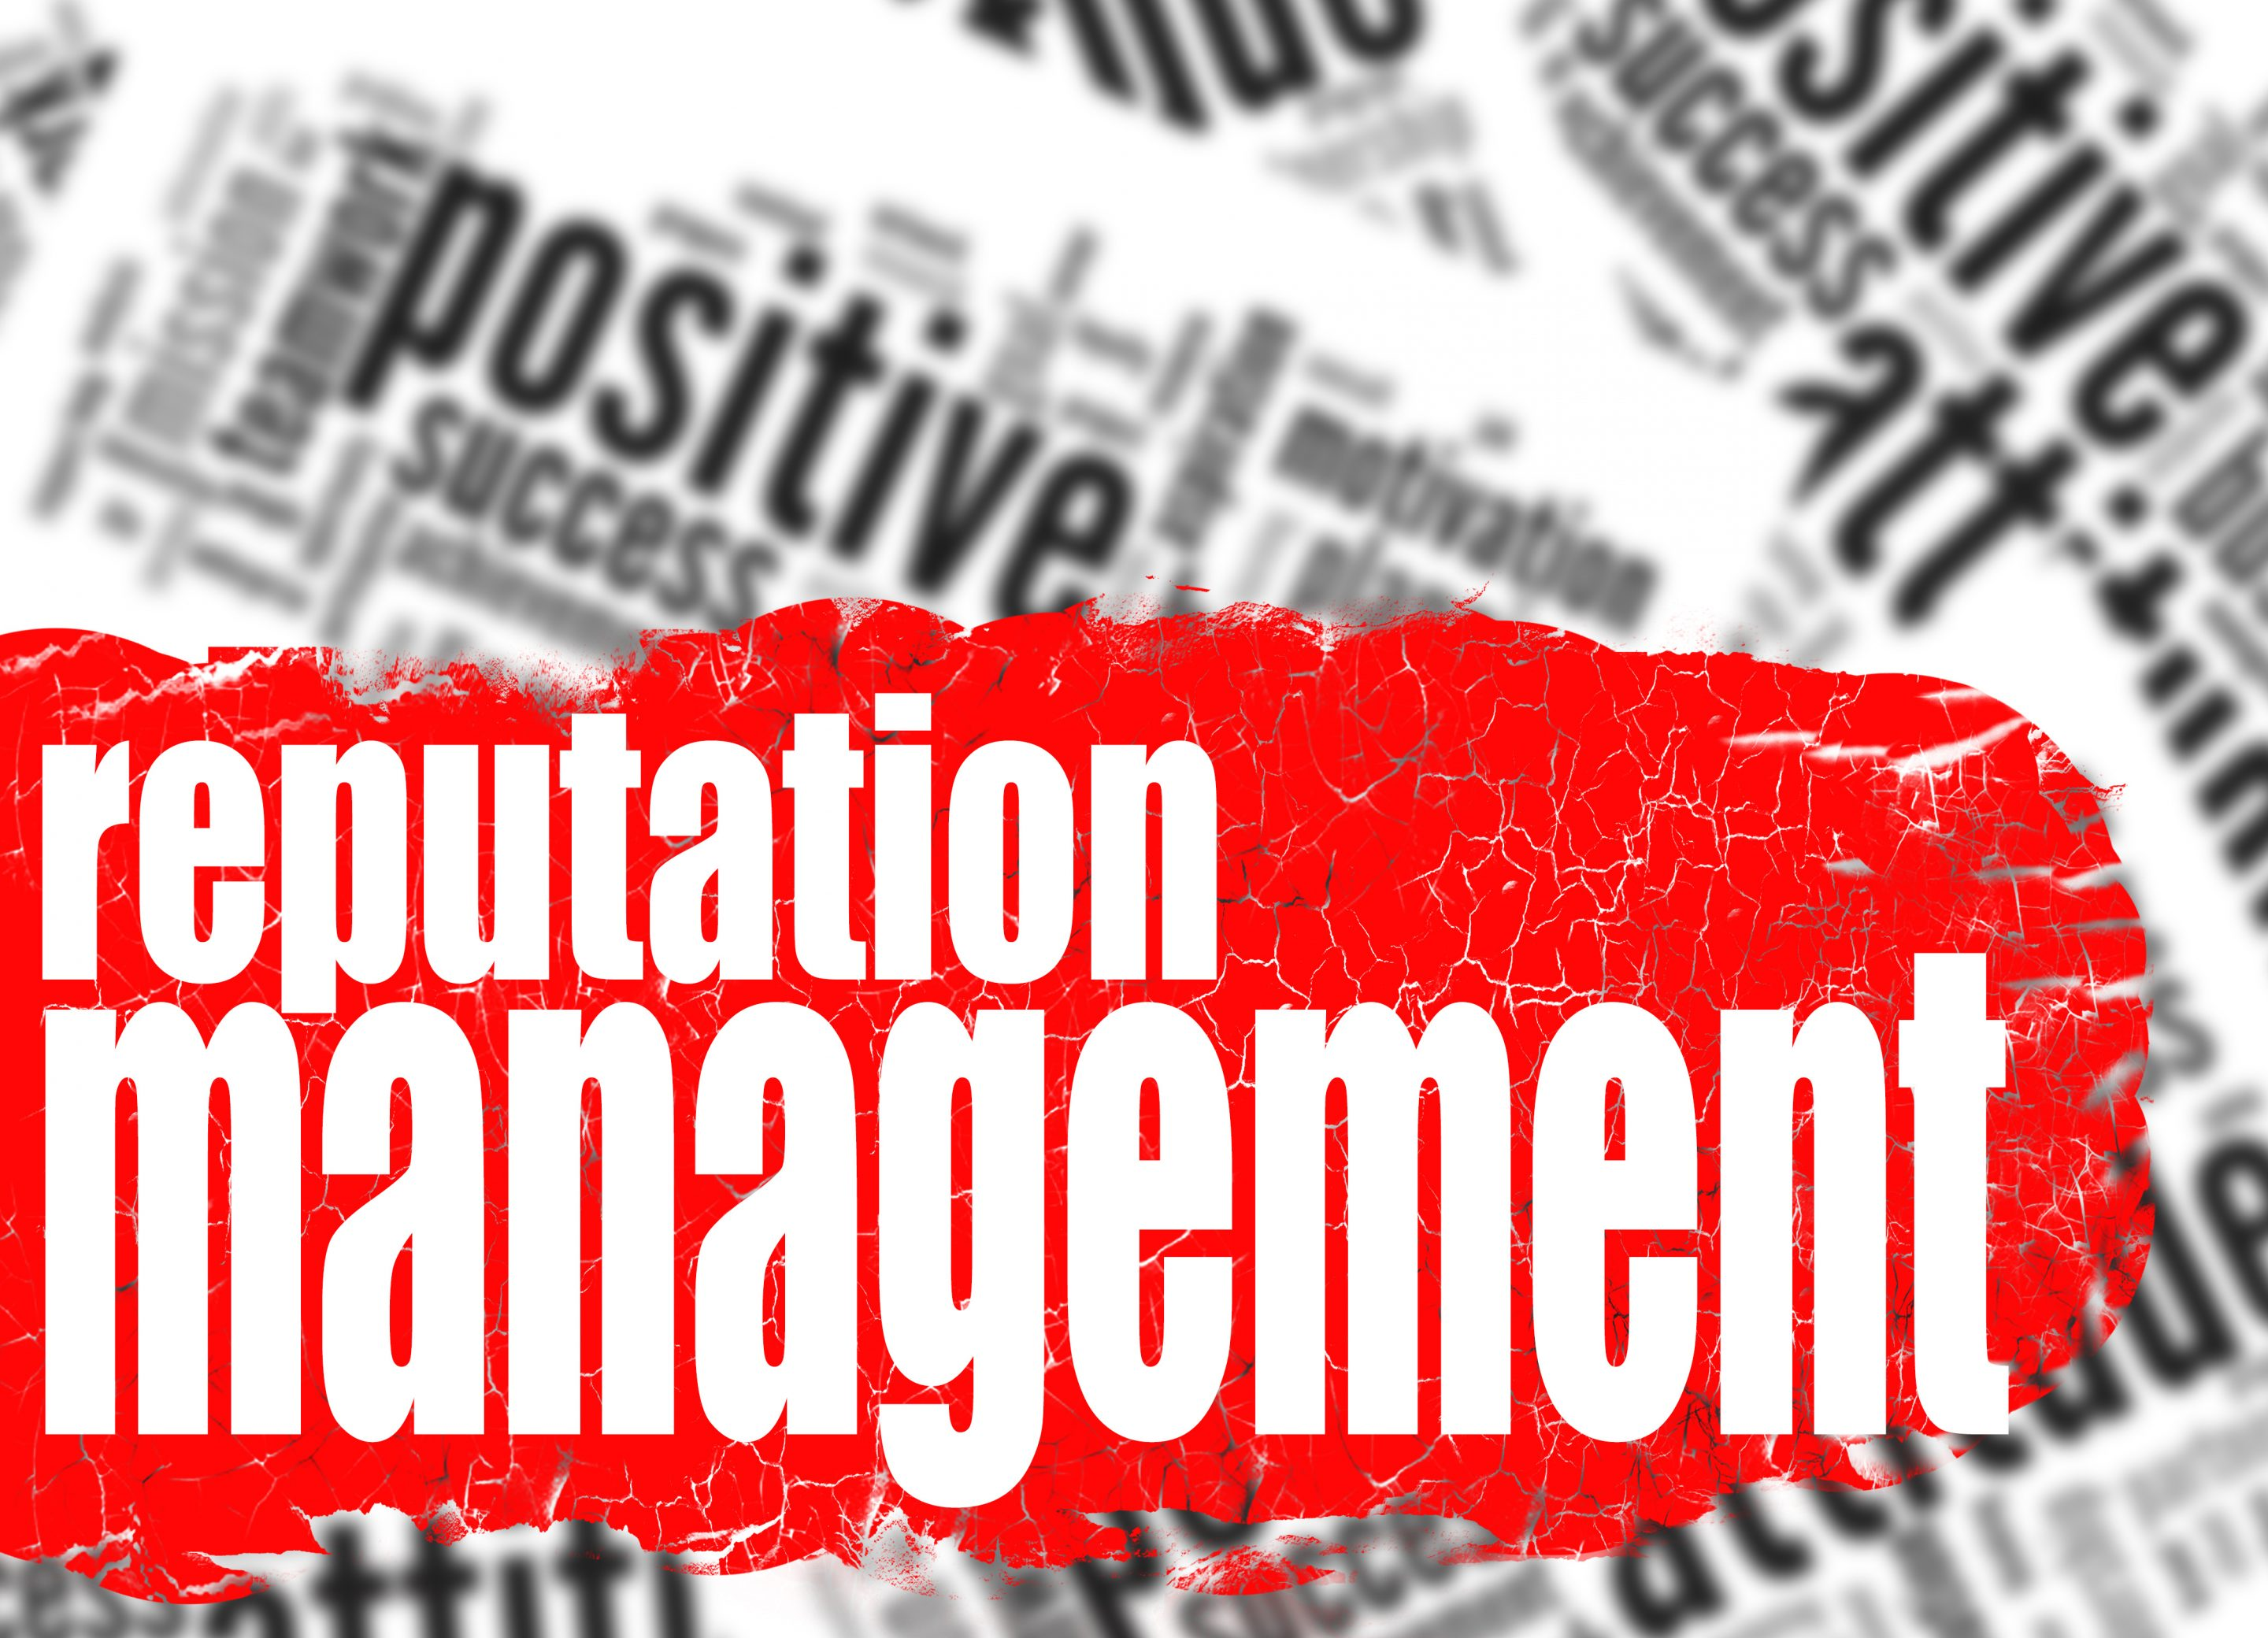 Your Reputation Management Agency